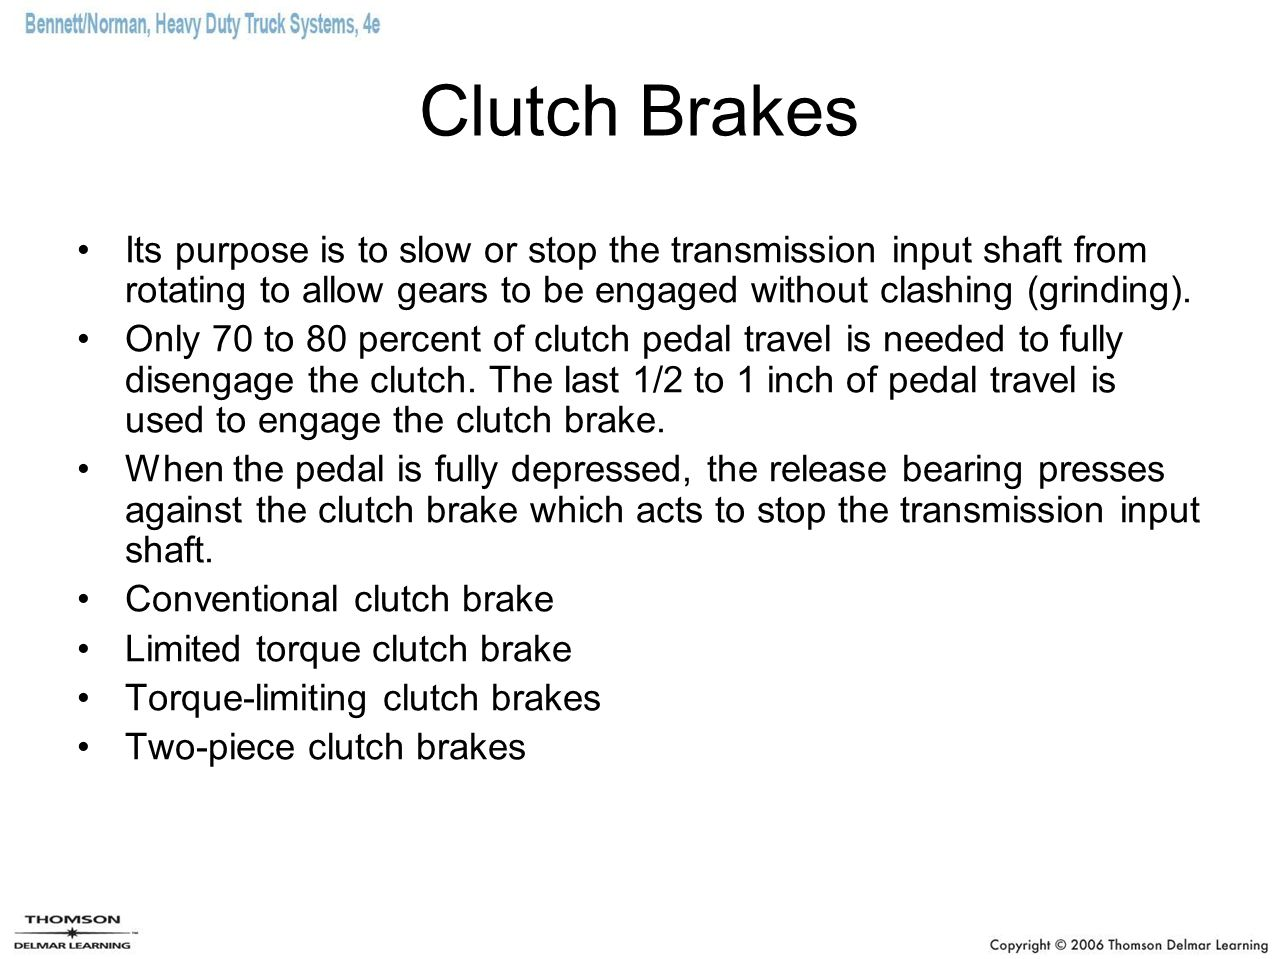 Clutch Brakes Its purpose is to slow or stop the transmission input shaft from rotating to allow gears to be engaged without clashing (grinding).